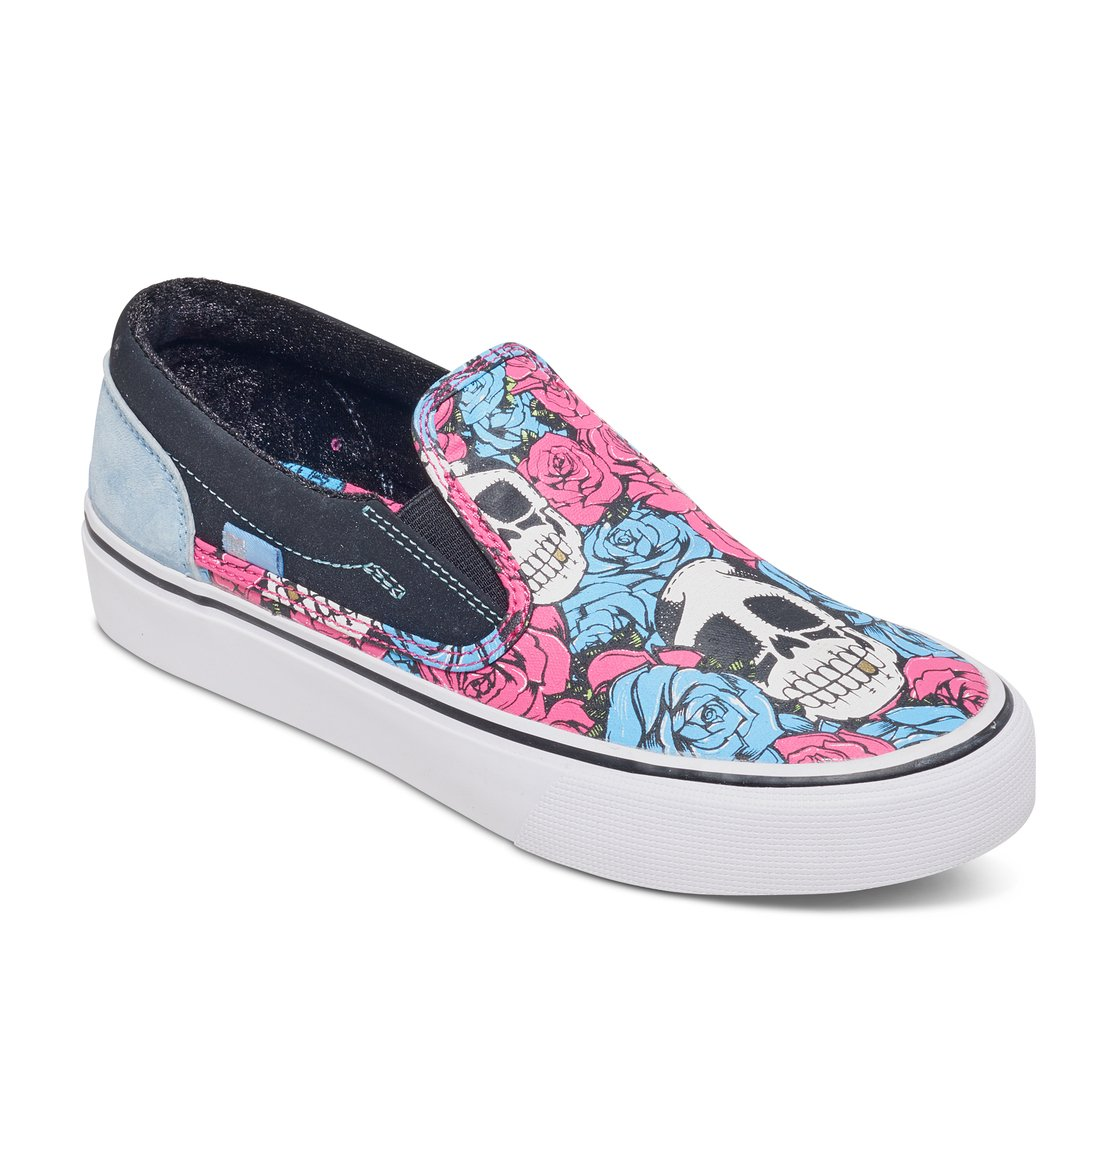 DC Shoes Trase X TR - Slip-On Shoes - Zapatillas - Mujer - EU 37.5 3dQWk2